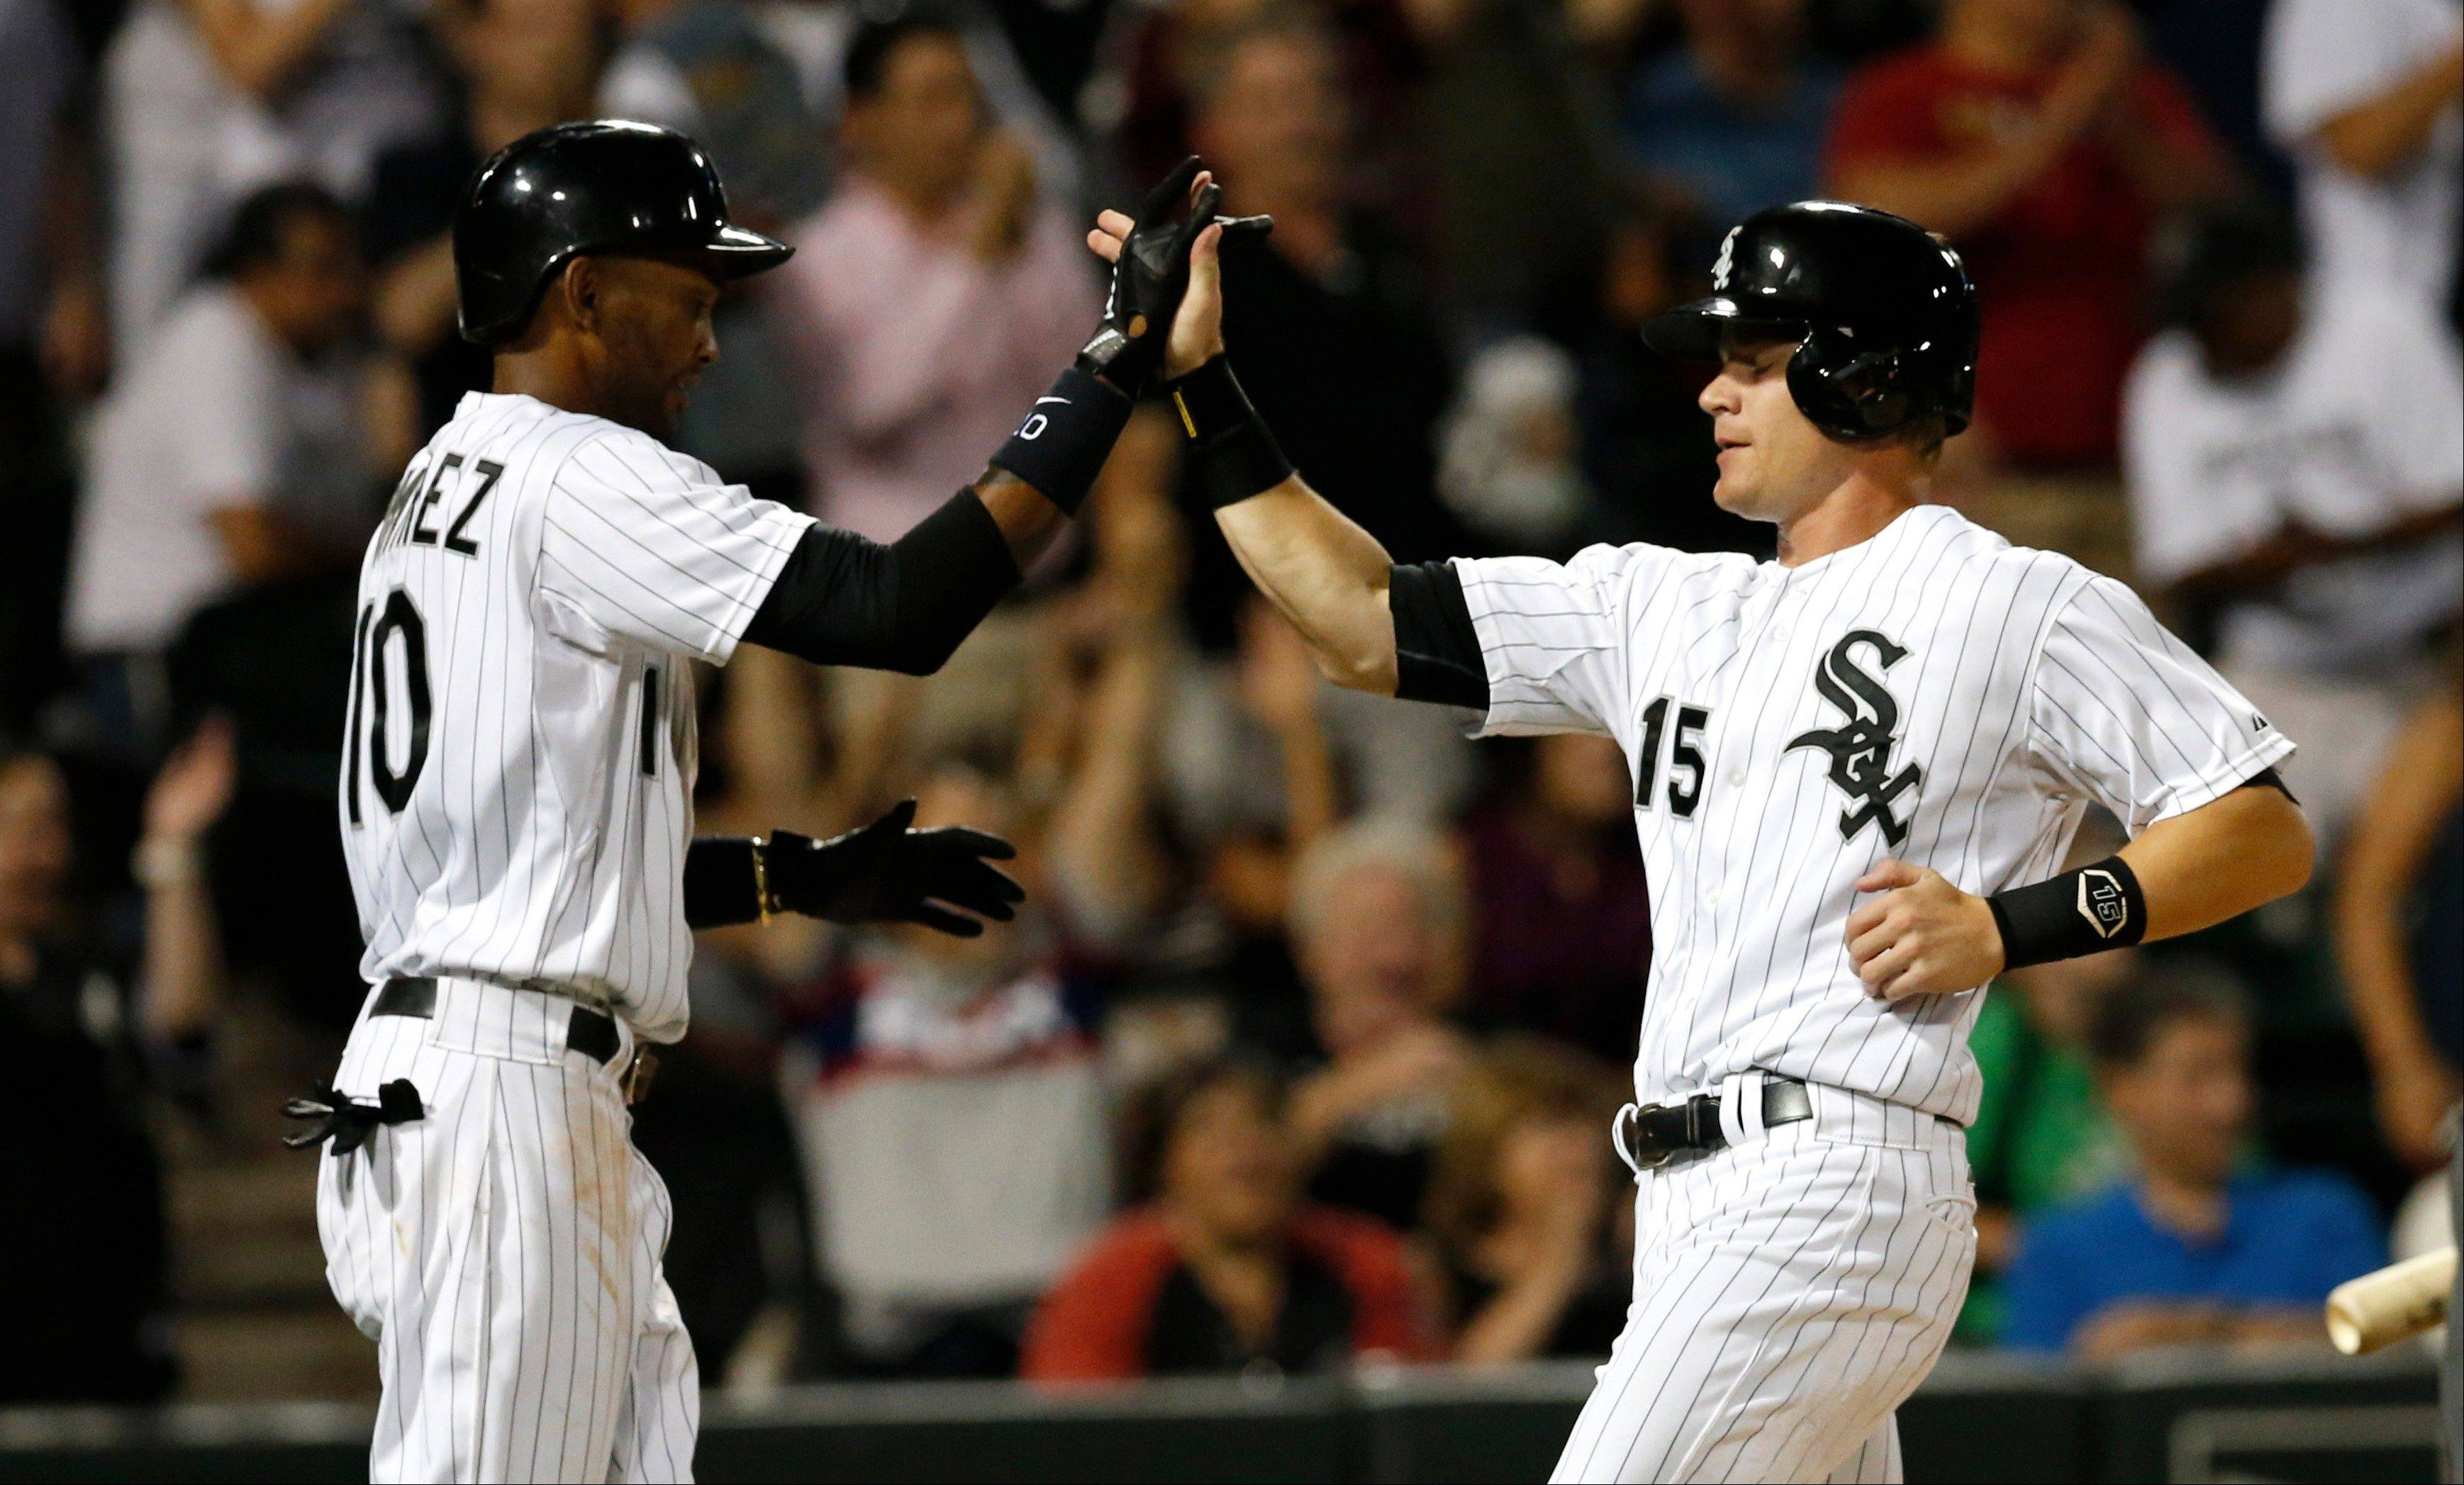 Alexei Ramirez, right, greets Gordon Beckham at home after the pair scored on a RBI single by Jordan Danks during the eighth inning of a baseball game against the Houston Astros, Tuesday, Aug. 27, 2013, in Chicago. (AP Photo/Charles Rex Arbogast)